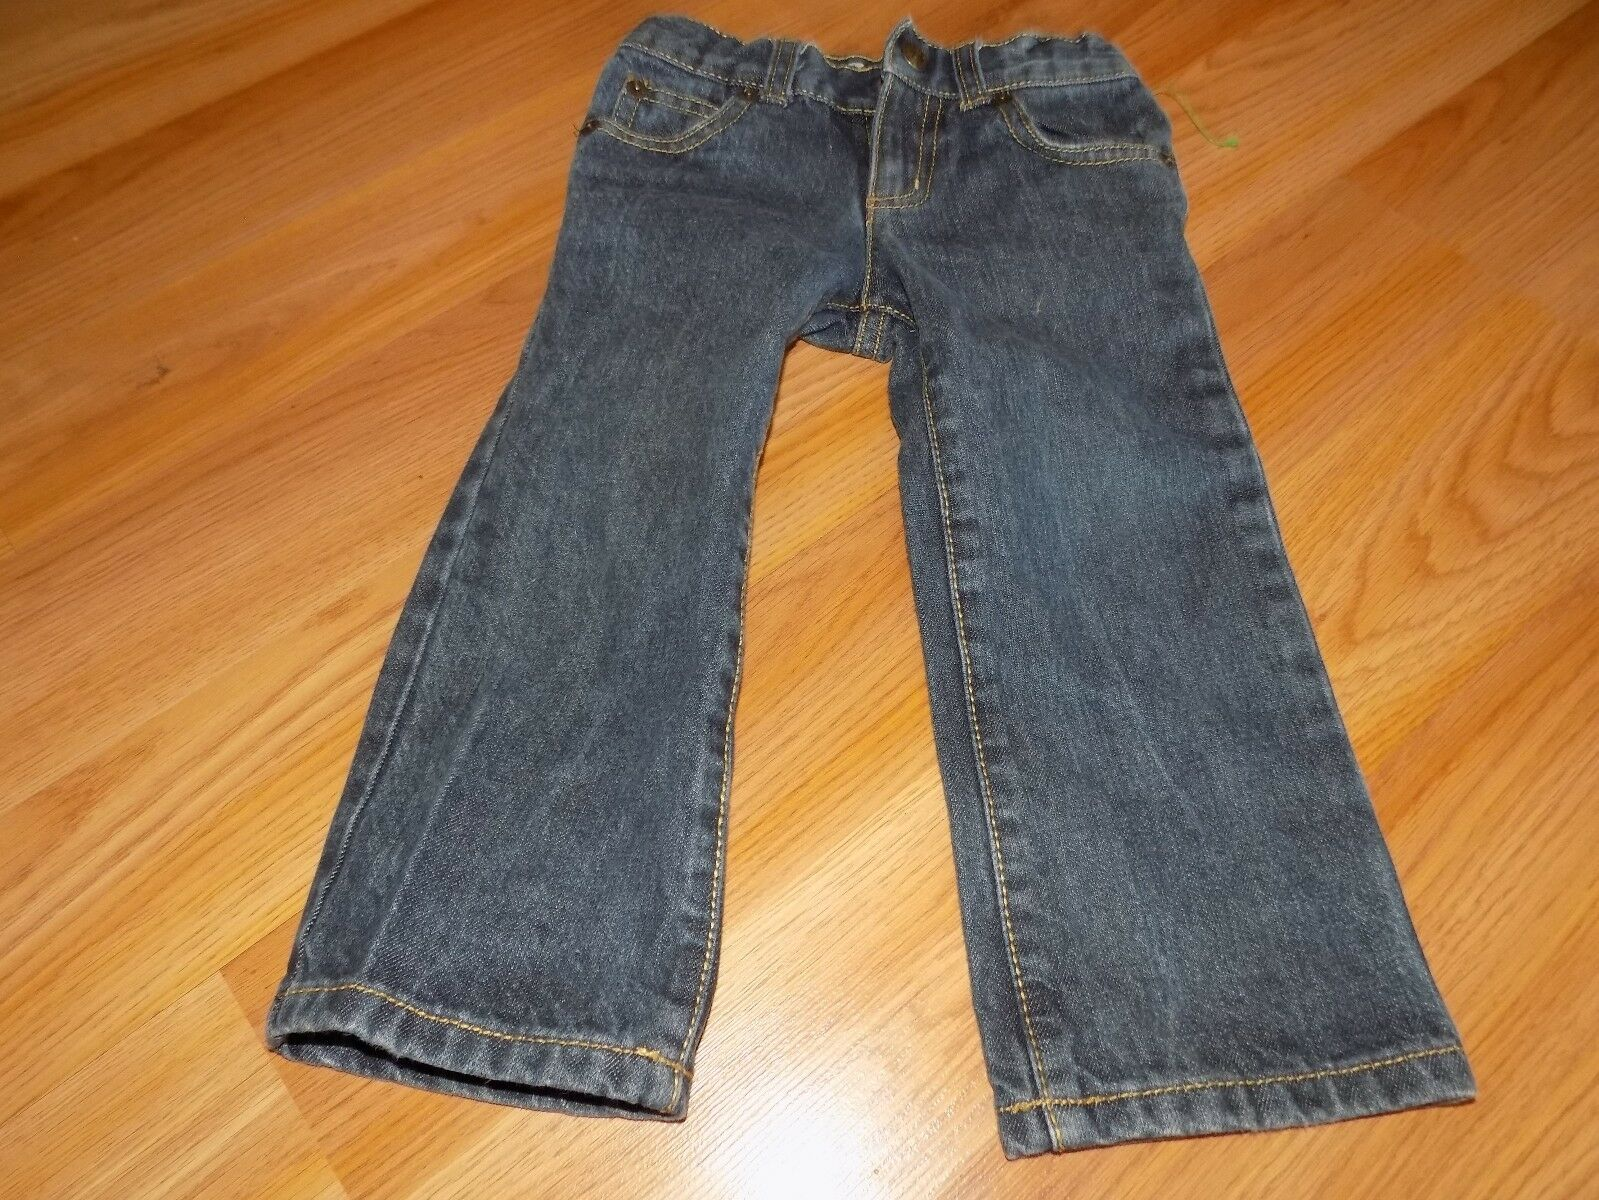 Primary image for Size 2T Crazy 8 Denim Blue Jeans Straight Leg Adjustable Waist EUC